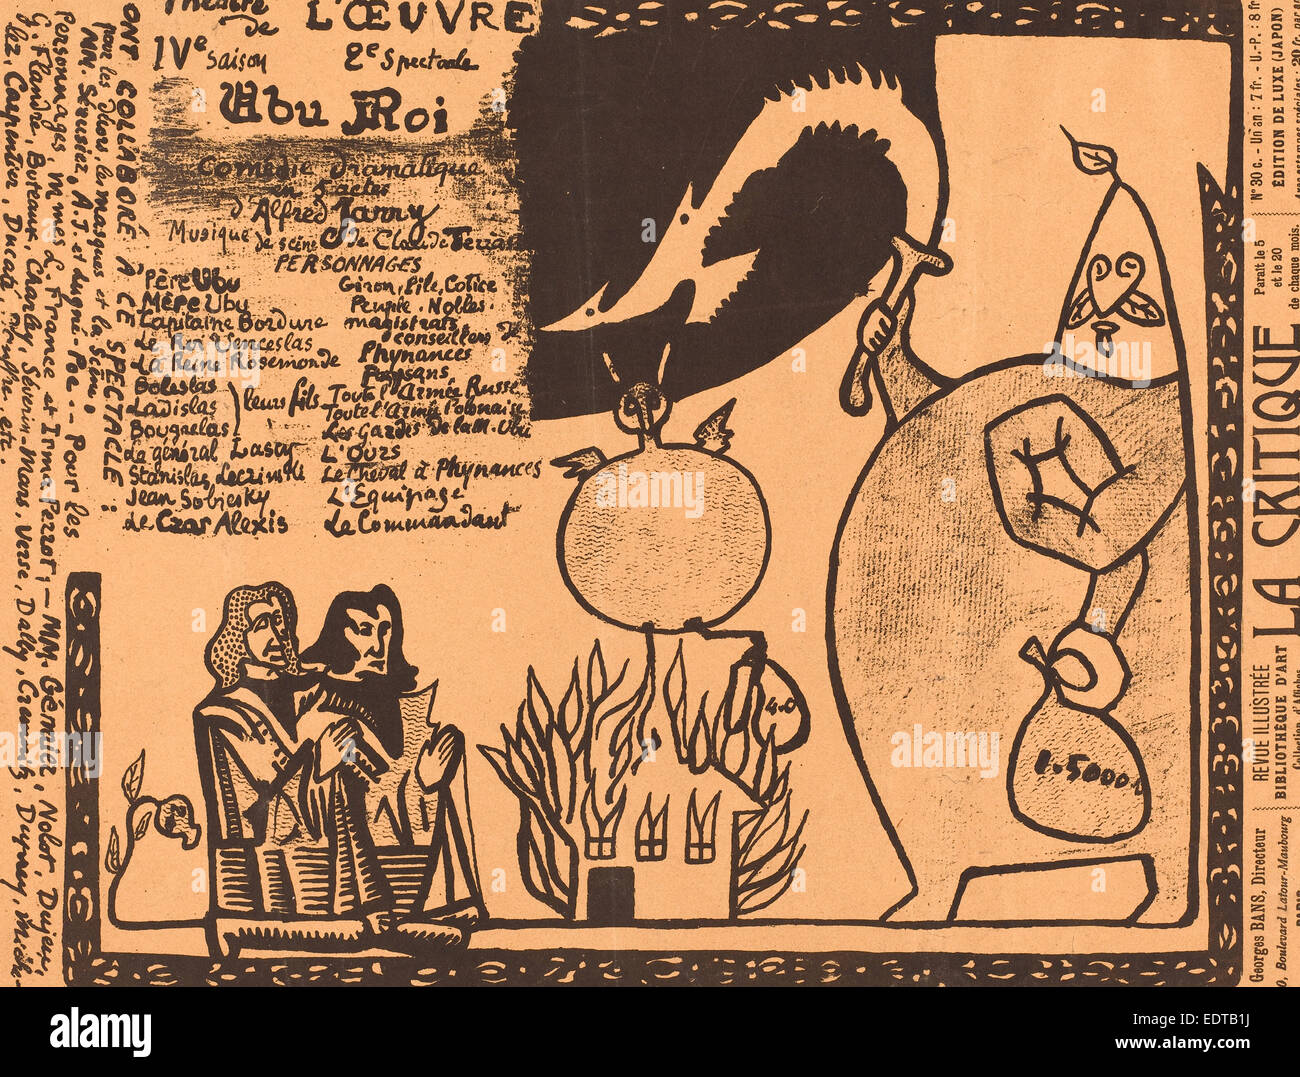 Alfred Jarry (French, 1873 - 1907), Ubu Roi, 1896, photomechanical process in black on pink wove paper - Stock Image